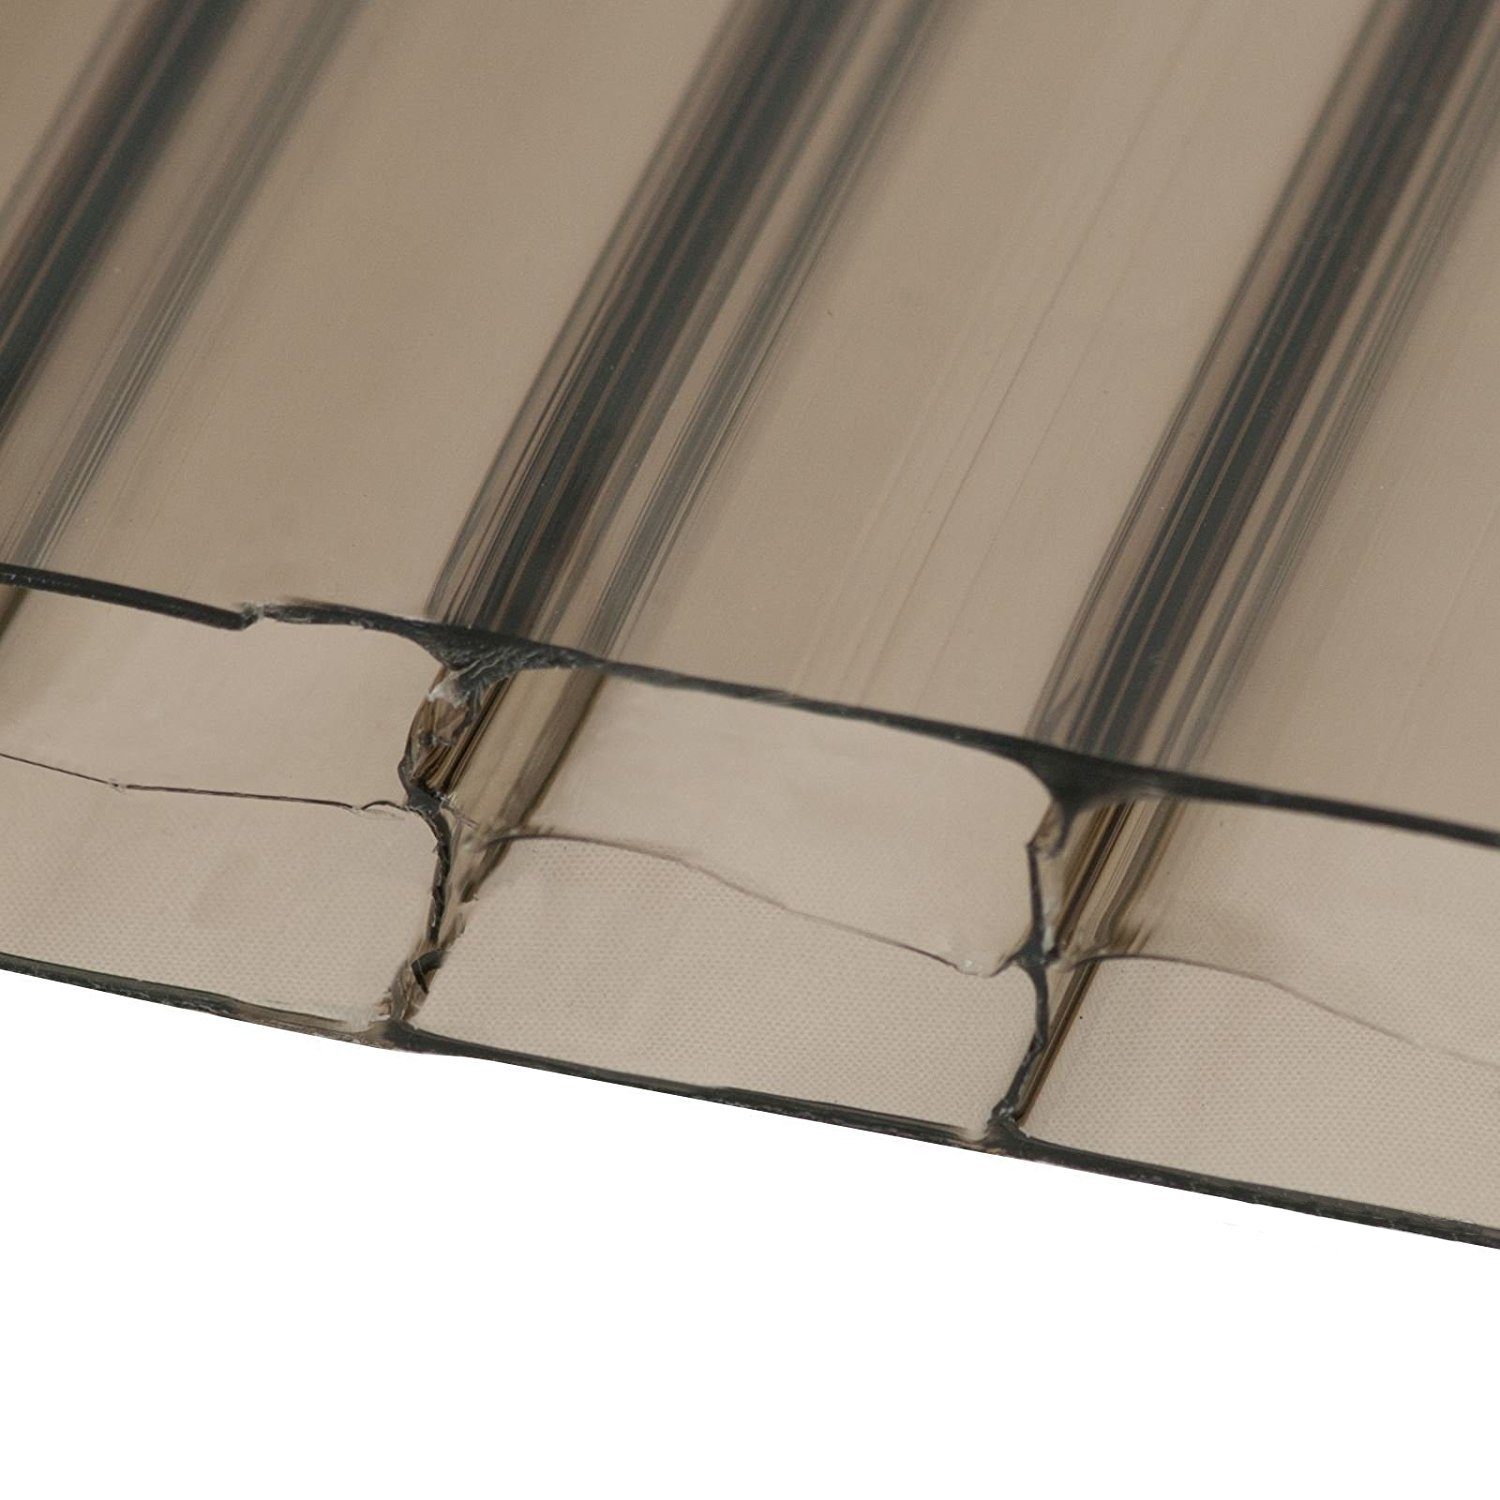 Bronze, 800m x 2.5m (Width x Length) 10mm Multiwall Polycarbonate Sheets Poly Plastic Roof Panel for Lean-to Canopy Conservatory Clear Amber